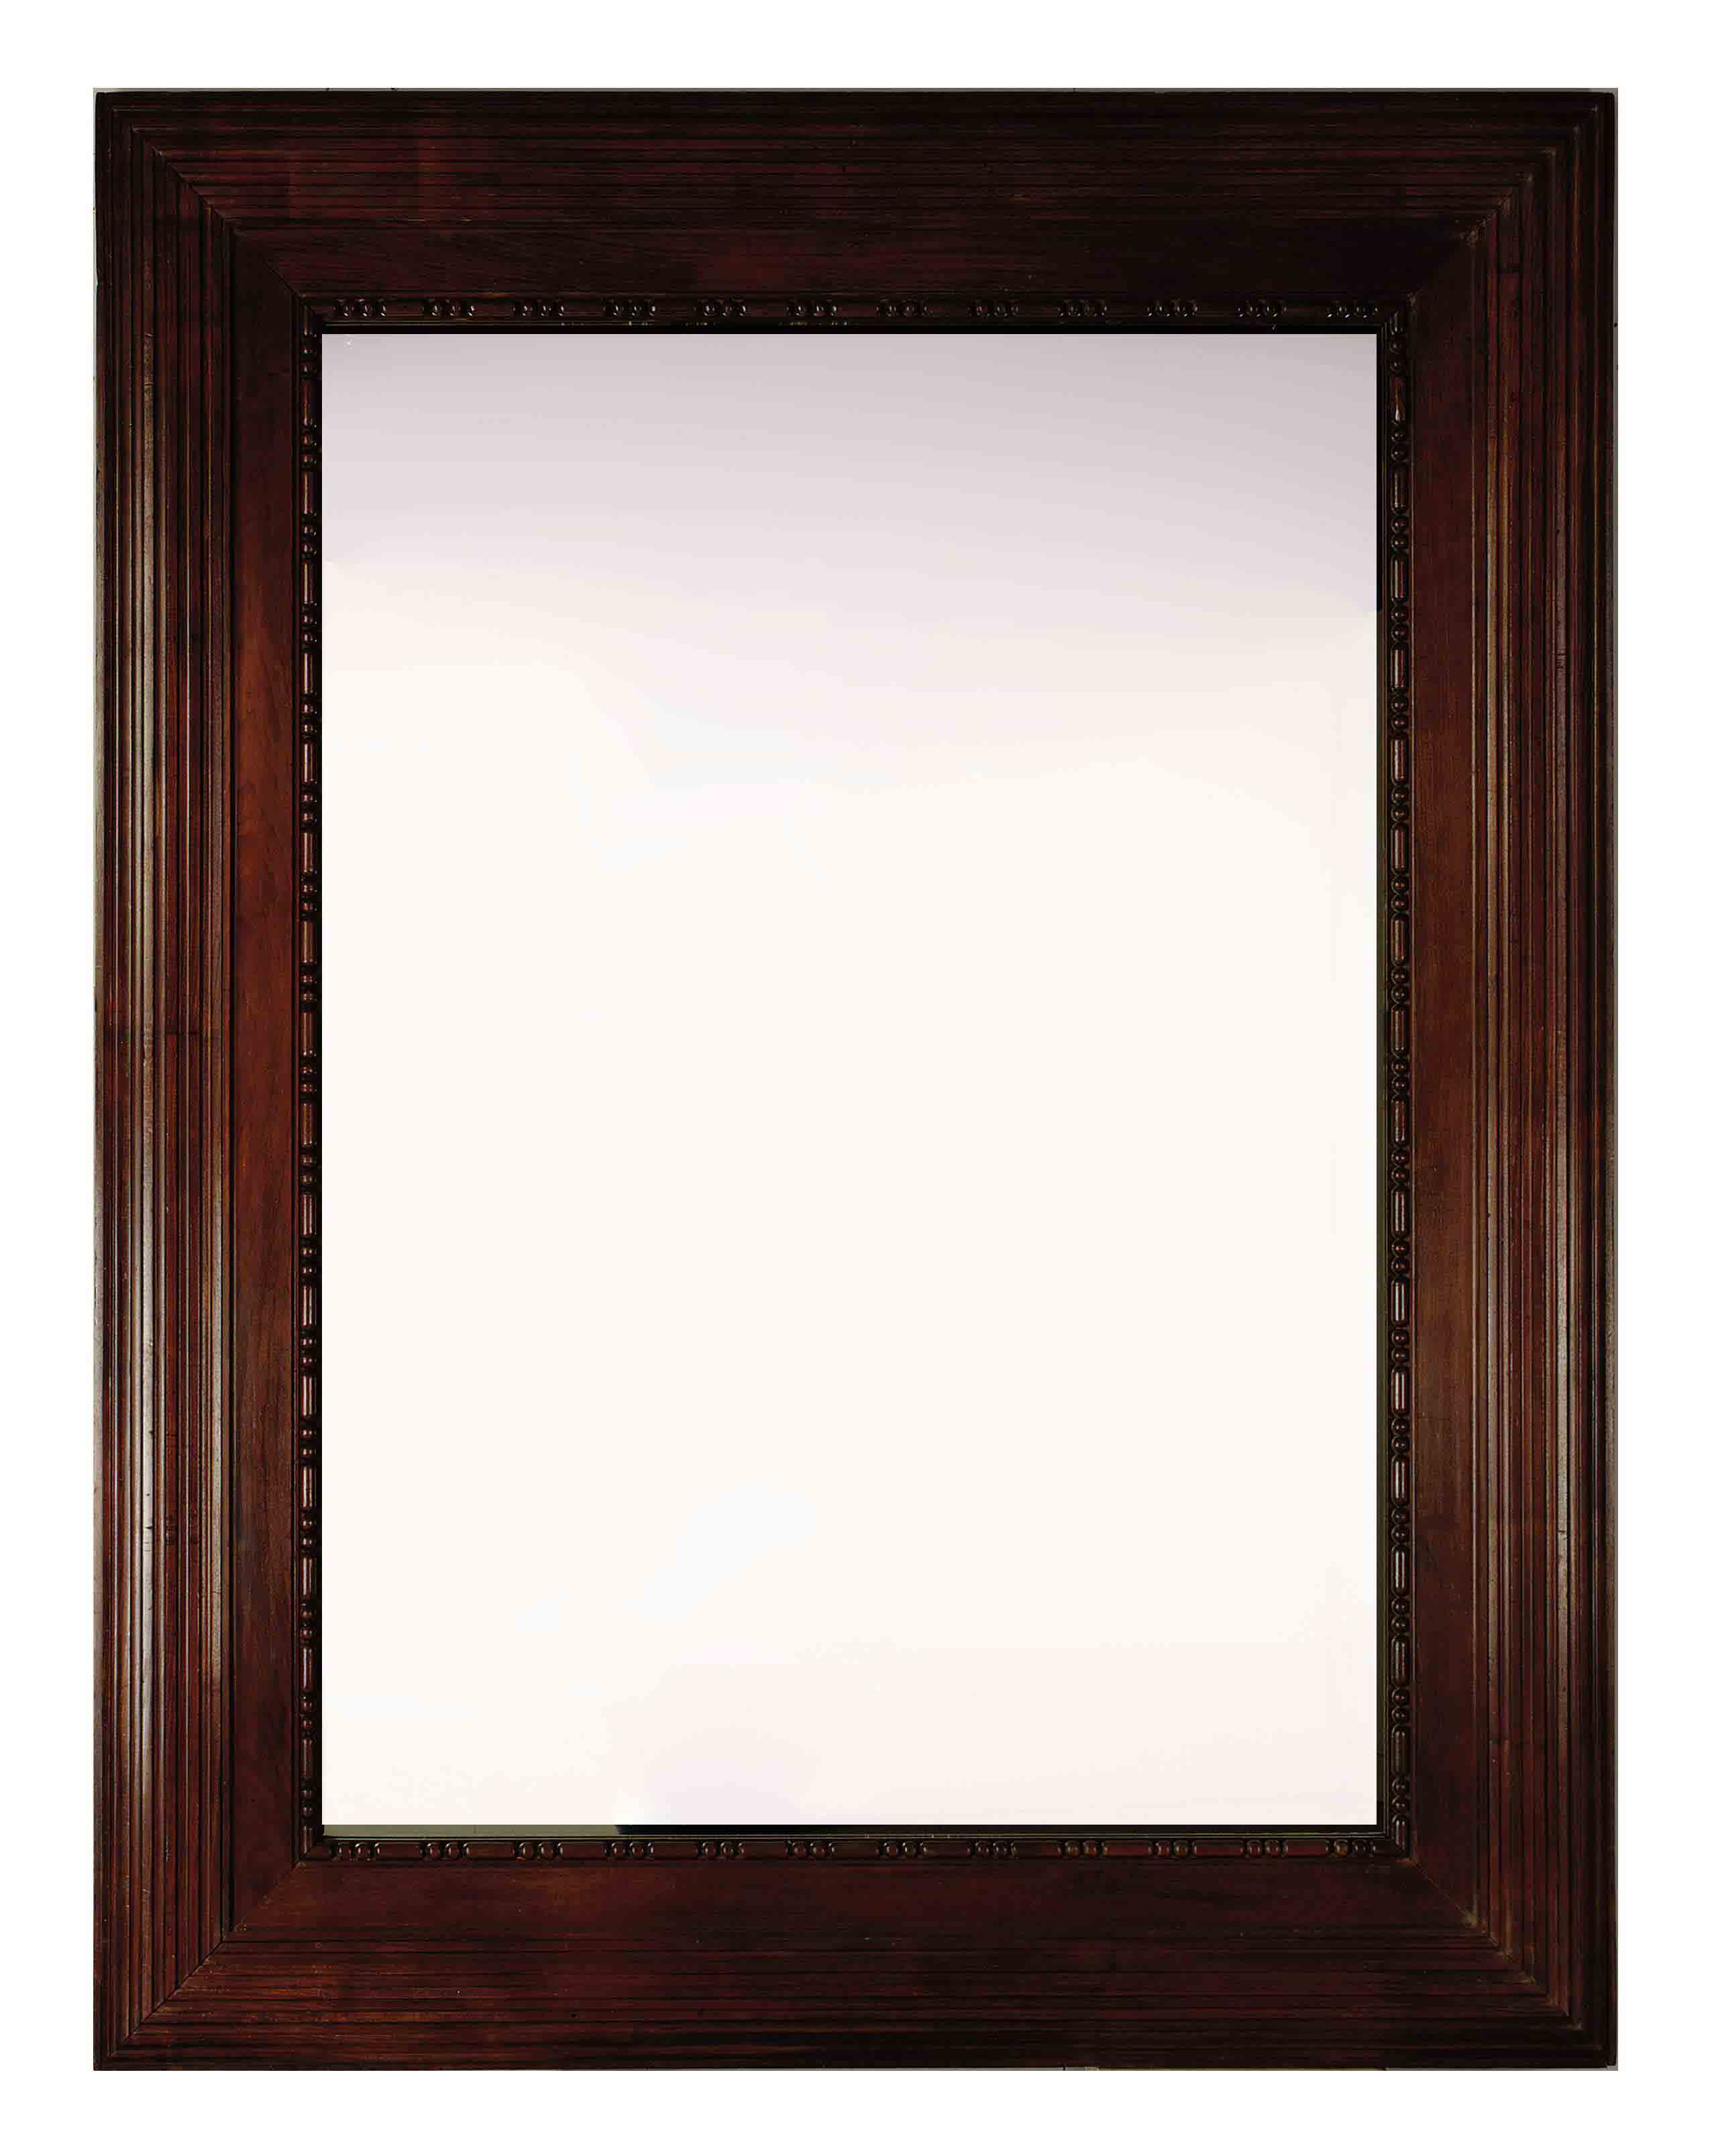 A LARGE FRENCH MAHOGANY MIRROR